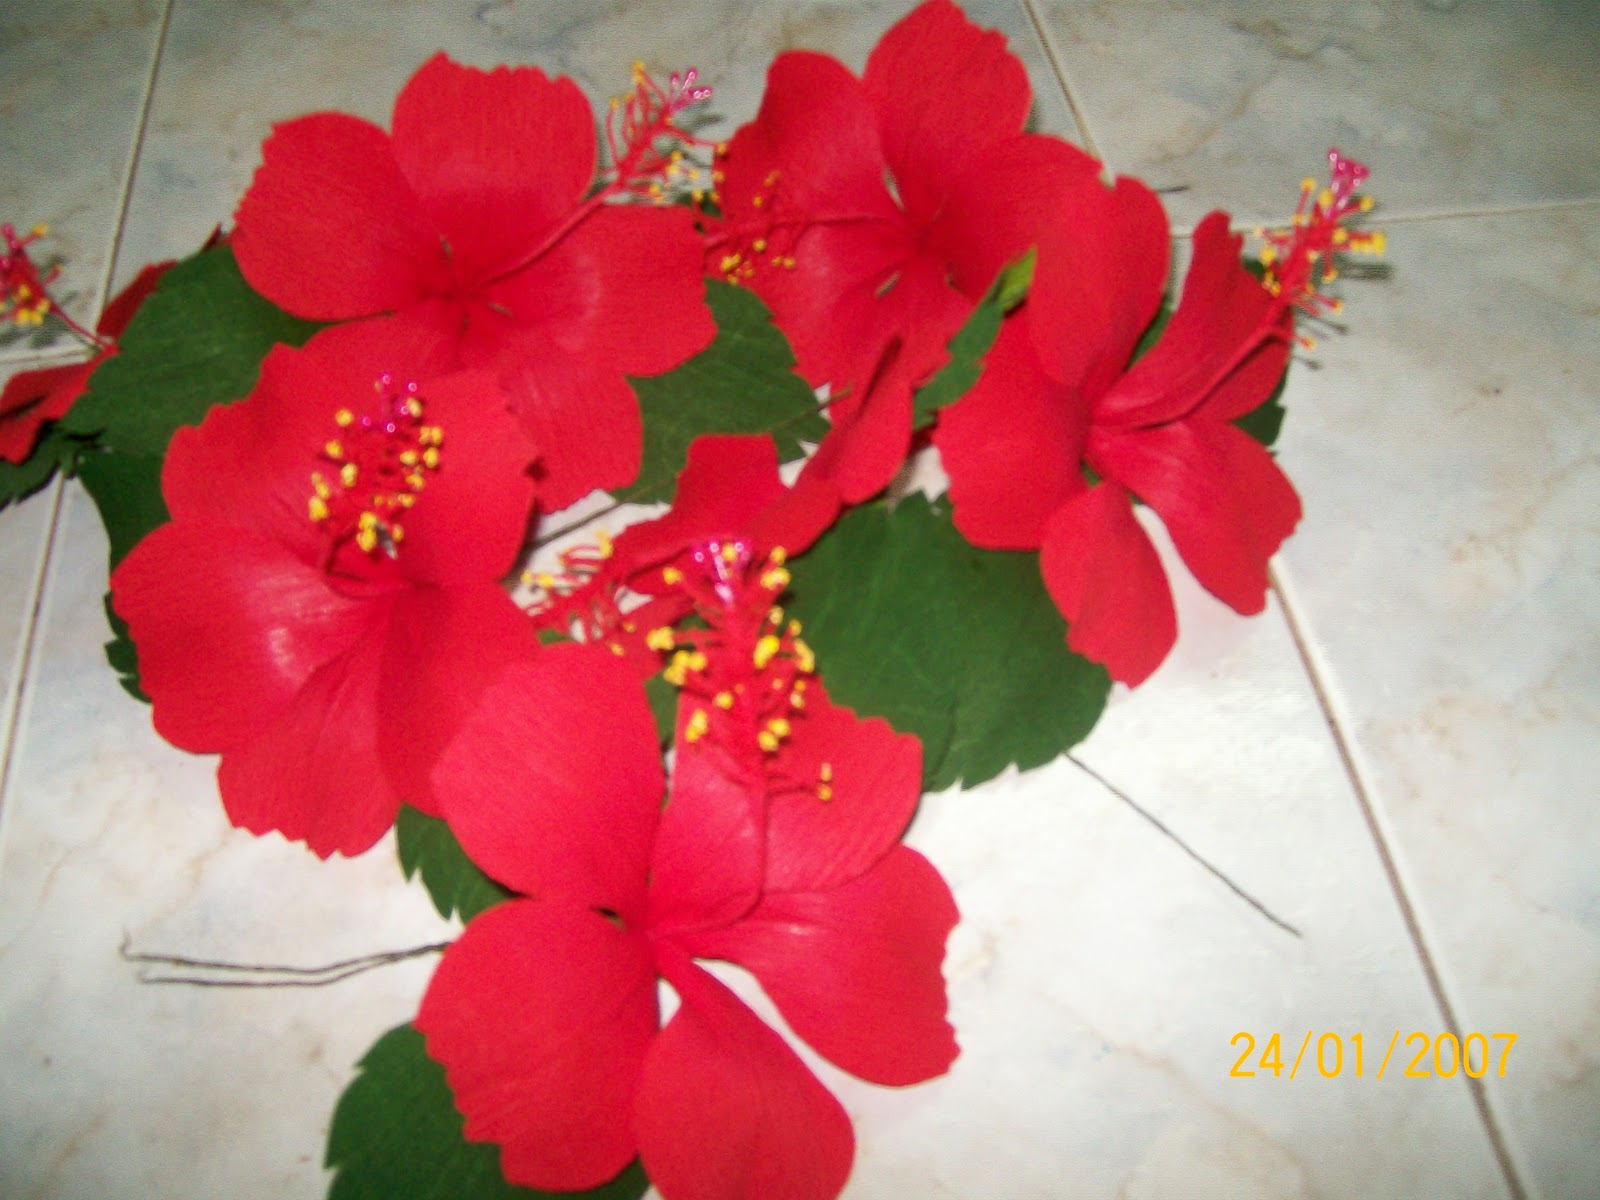 Tinas creations paper hibiscus shoe flower i got an order to make 20 hibiscus flowers they are made of red duplex paper and turned out great red hibiscus flowers are commonly used in india as an izmirmasajfo Choice Image